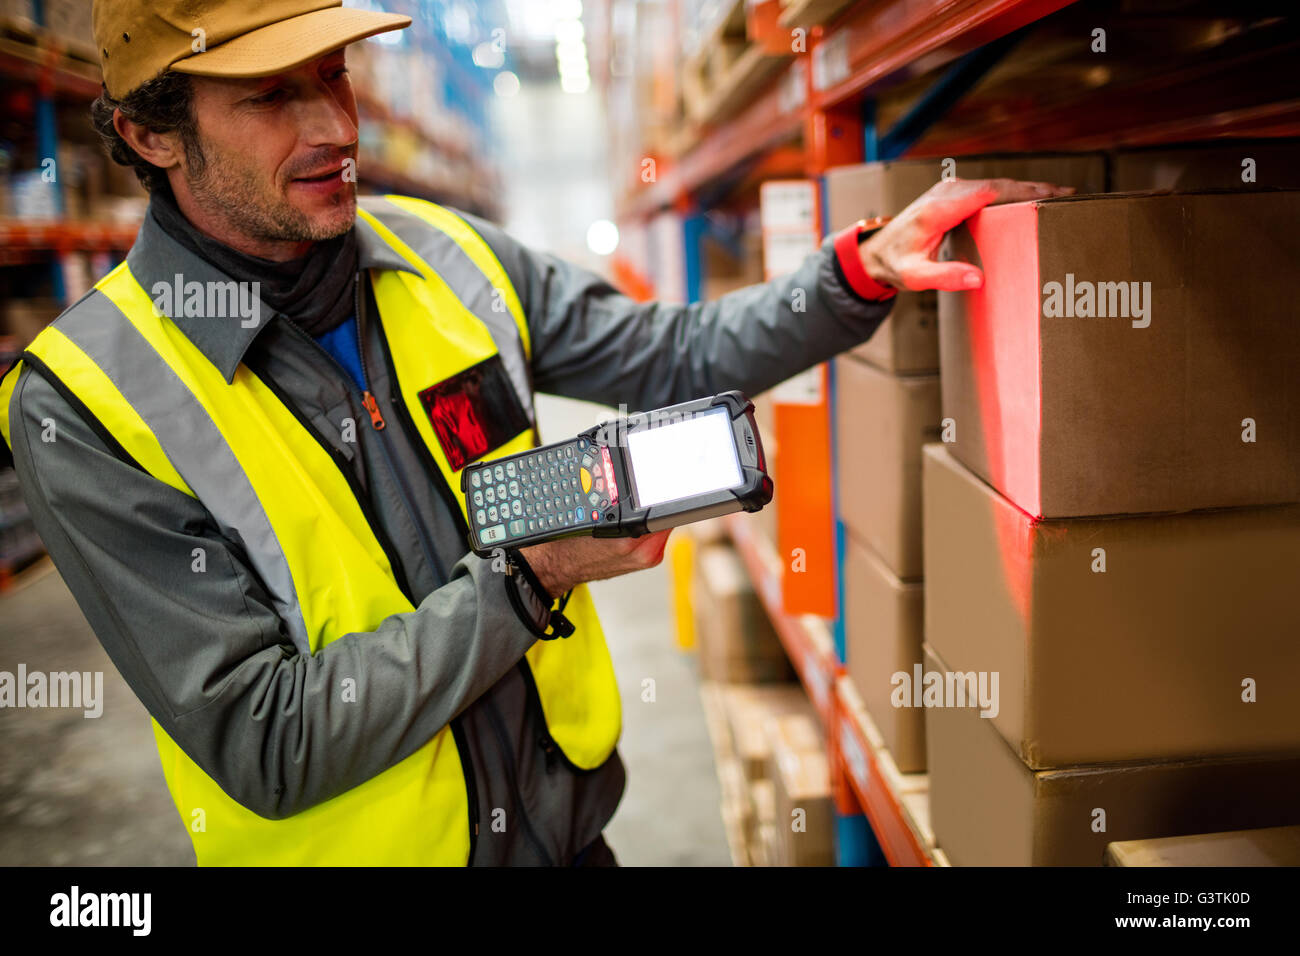 Warehouse worker using hand scanner stock photo royalty free stock photo warehouse worker using hand scanner sciox Choice Image